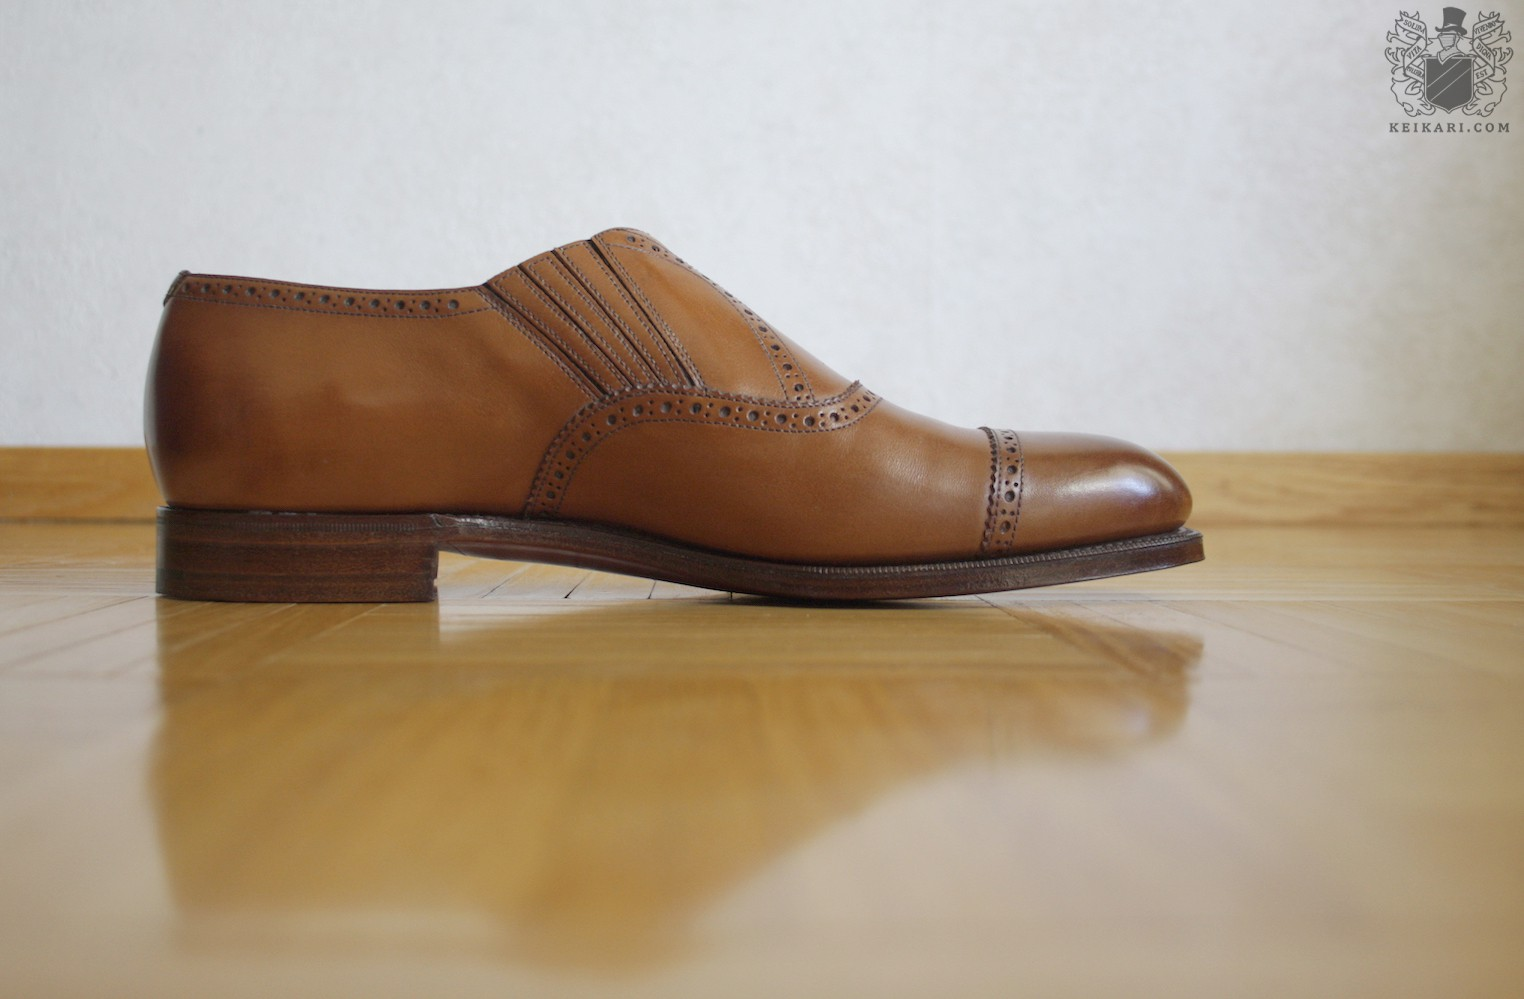 edward_green_kibworth_side_elastic_shoes_at_keikari_dot_com07